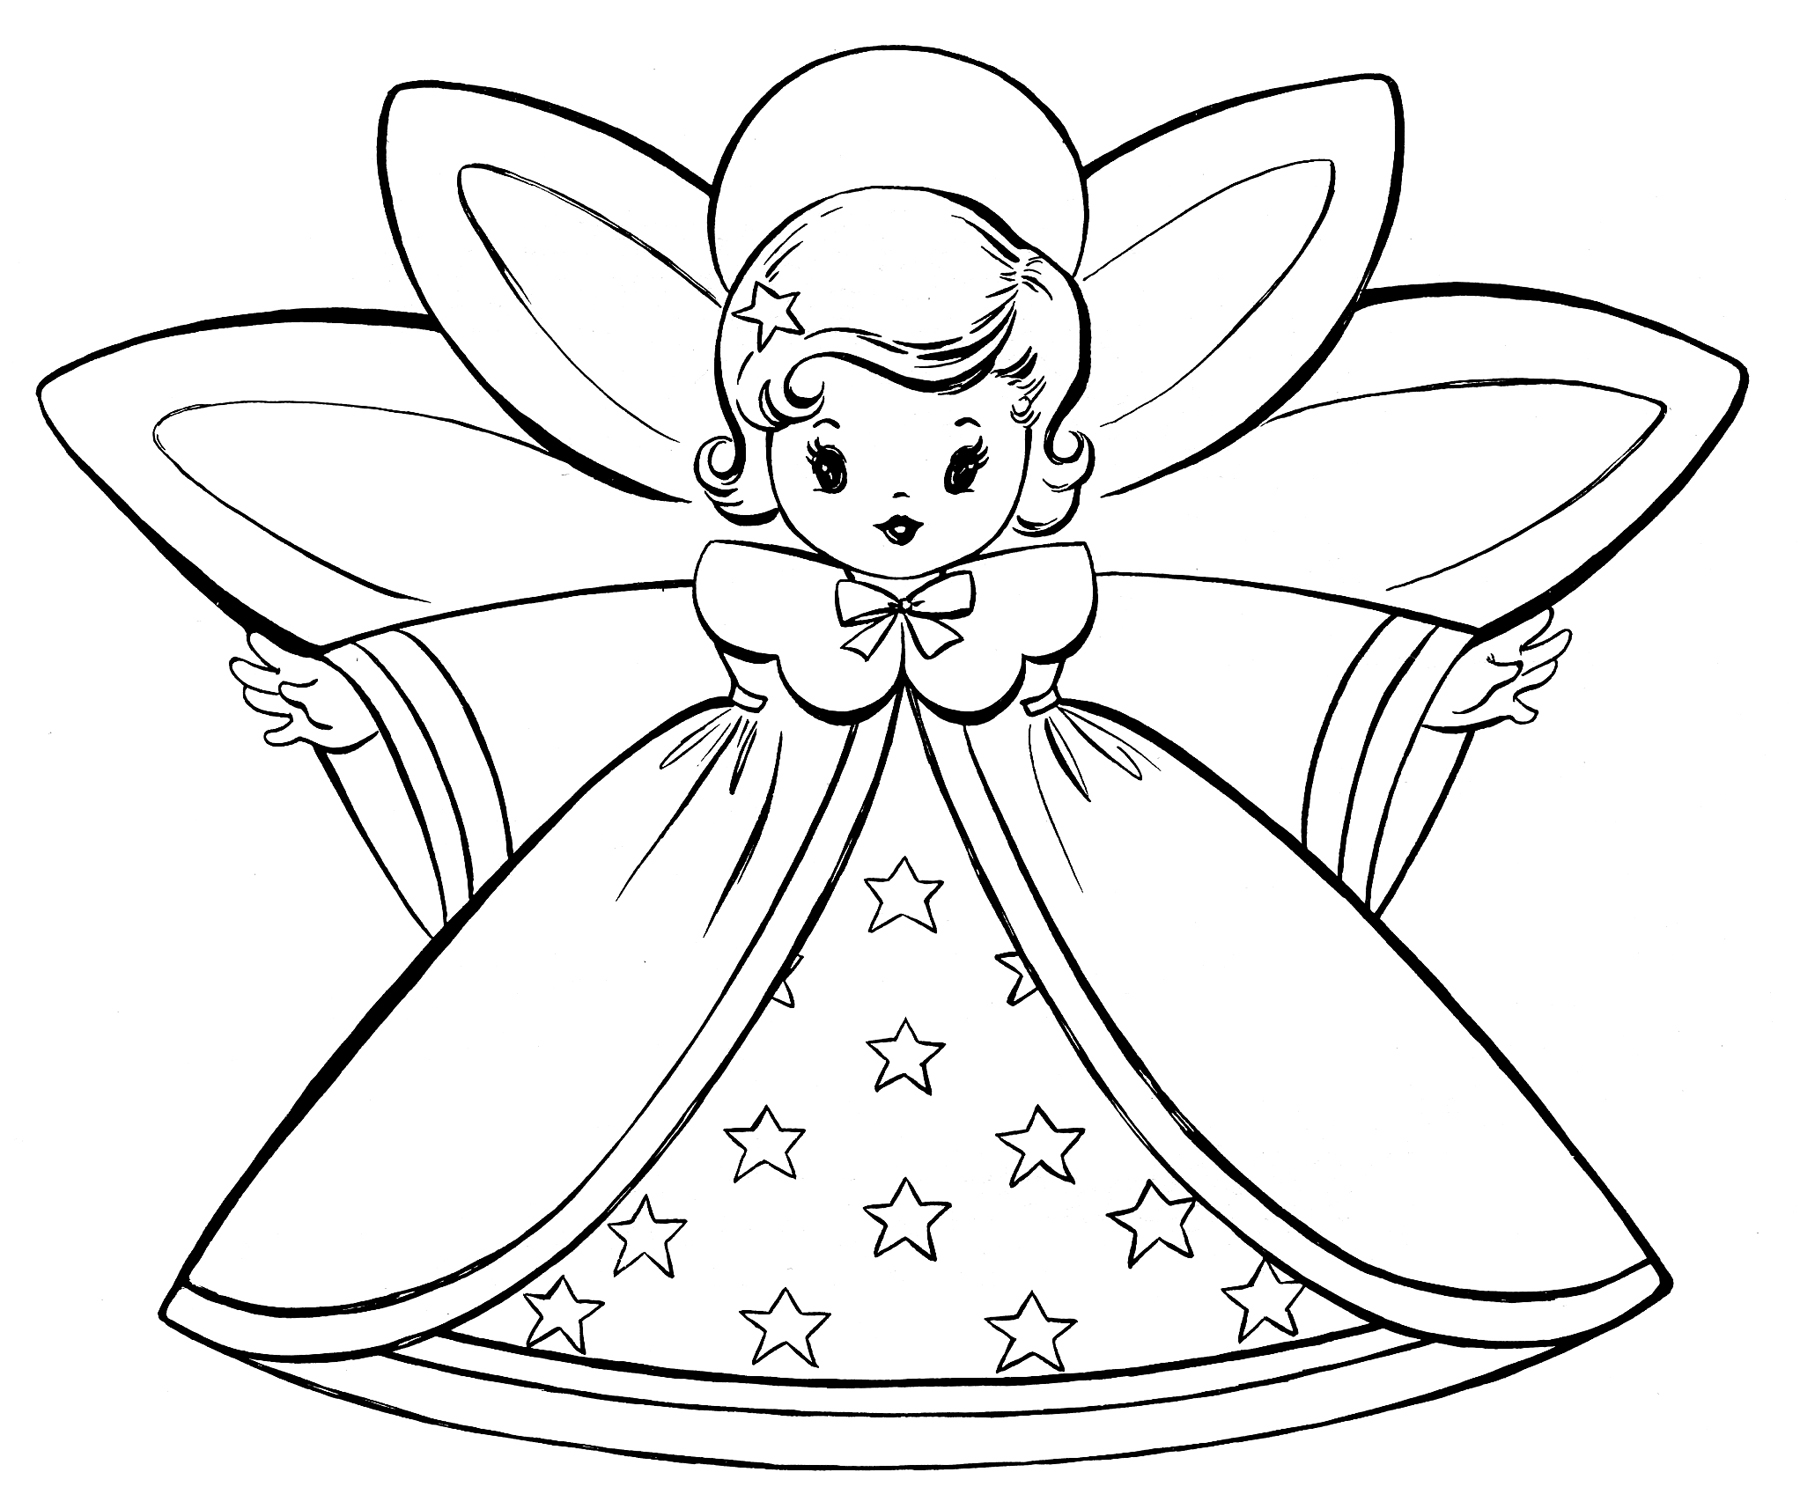 Printable Christmas Coloring Pages With Free Retro Angels The Graphics Fairy